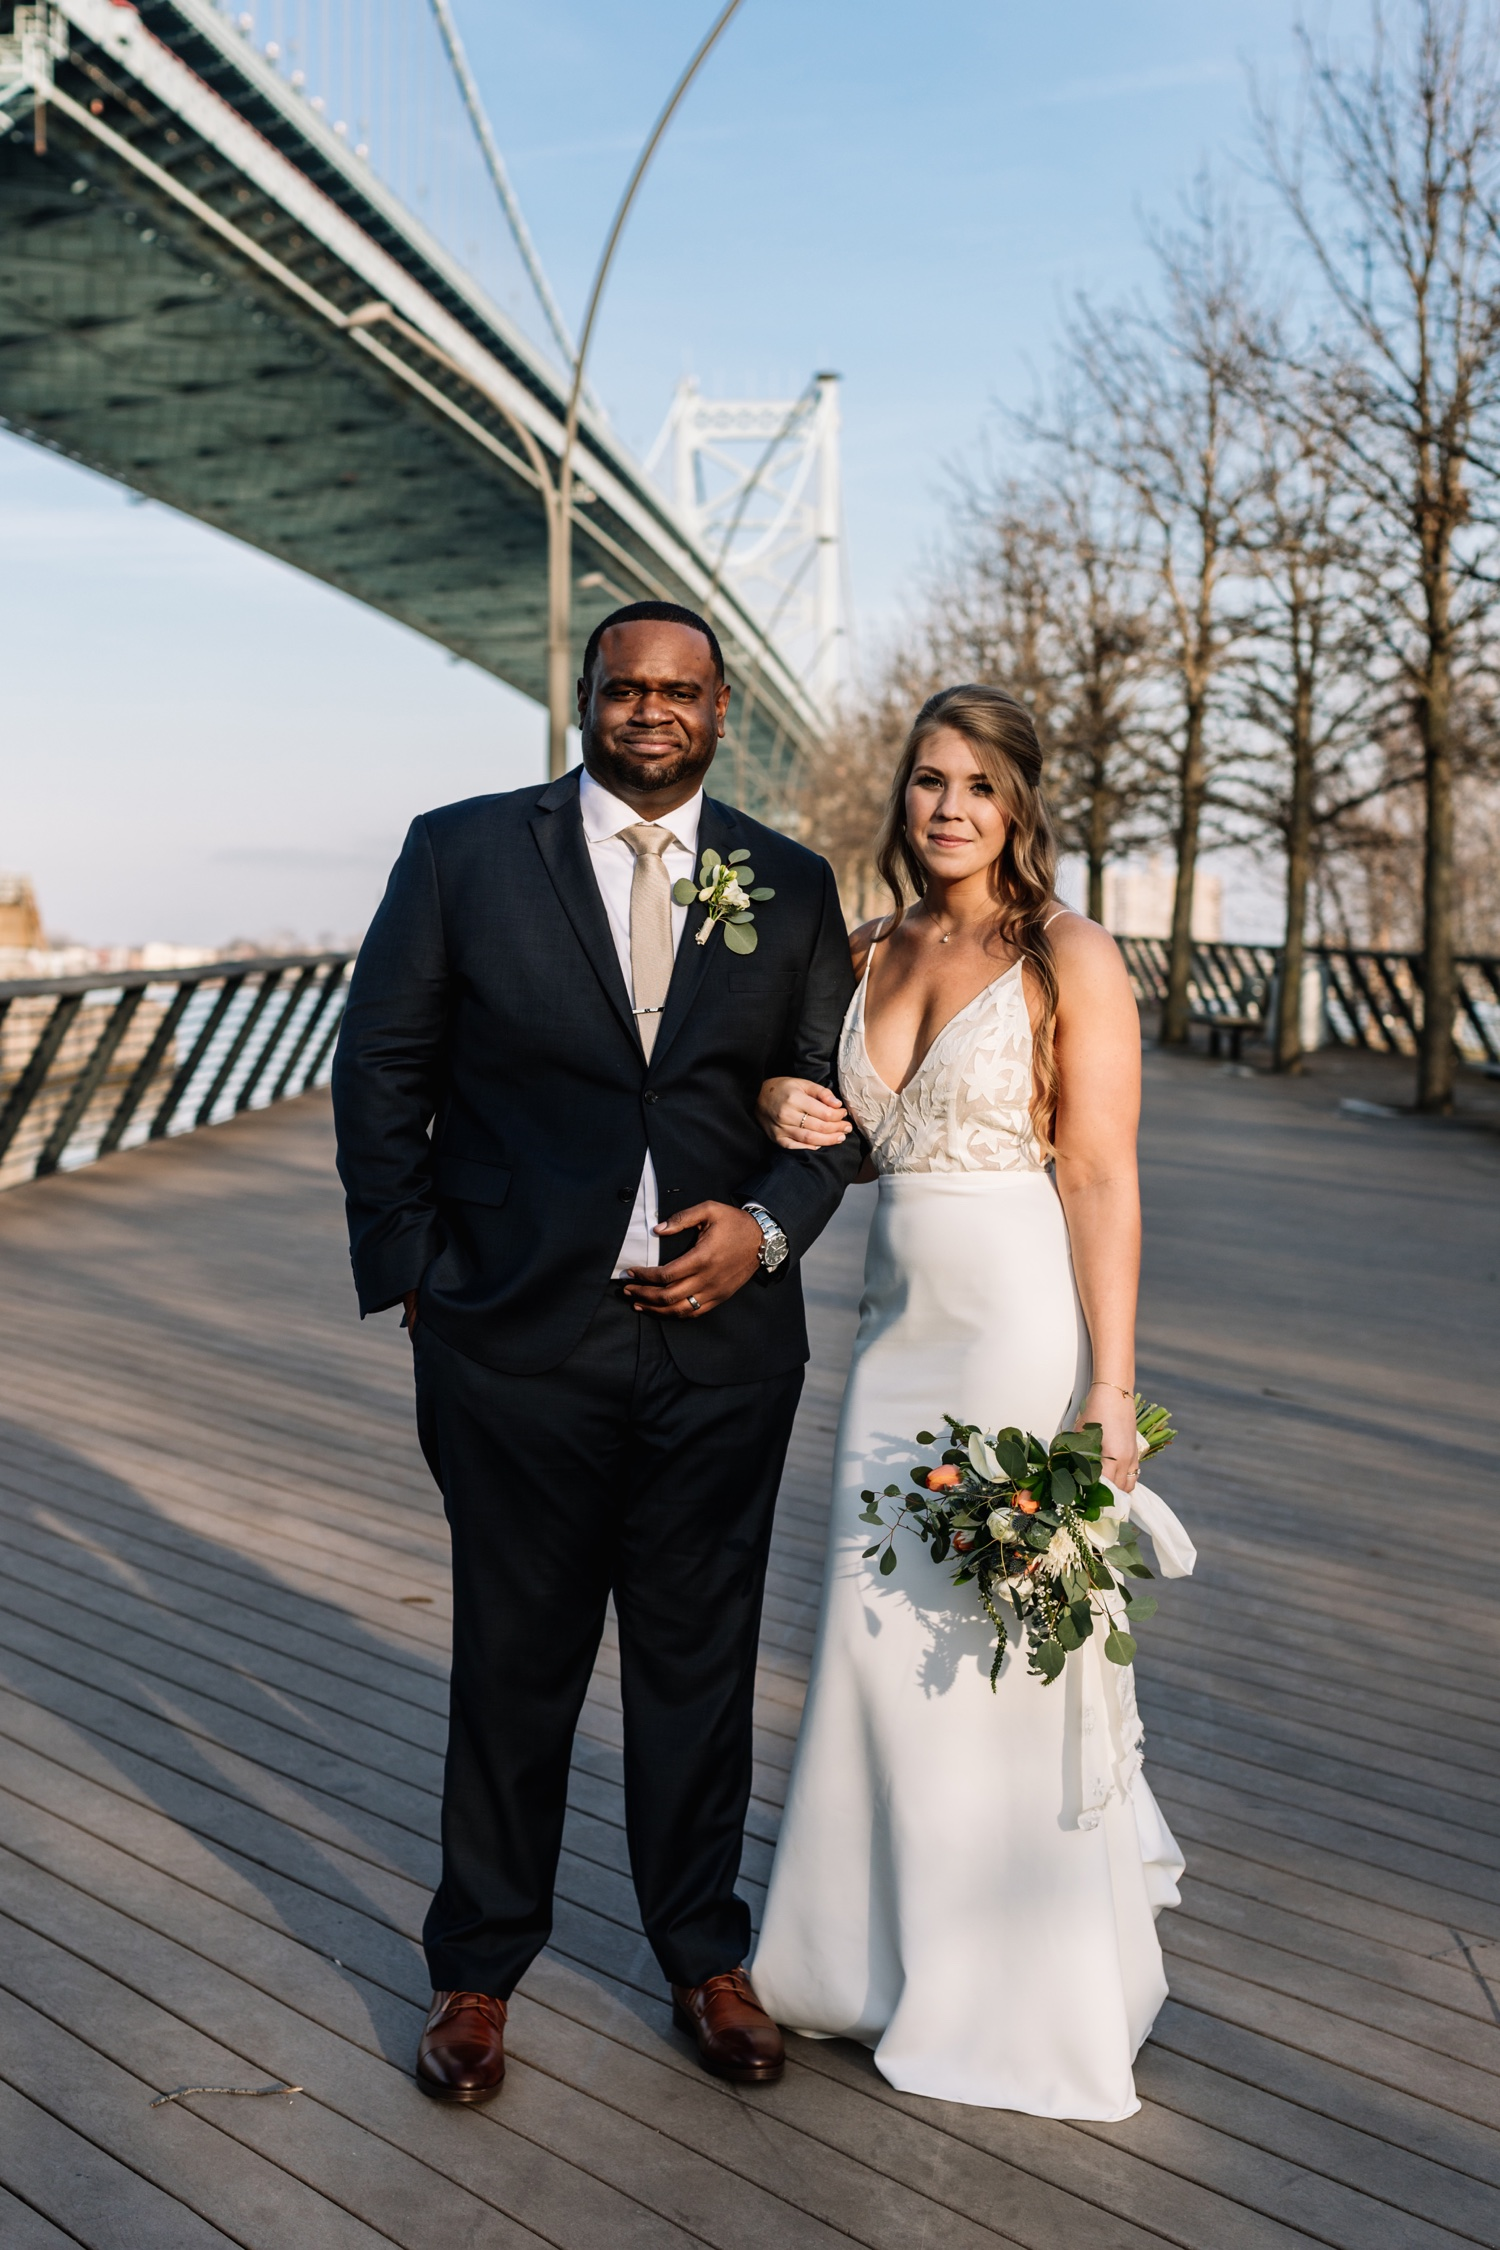 Inclusive Wedding Photographers Philadelphia - Race St Pier